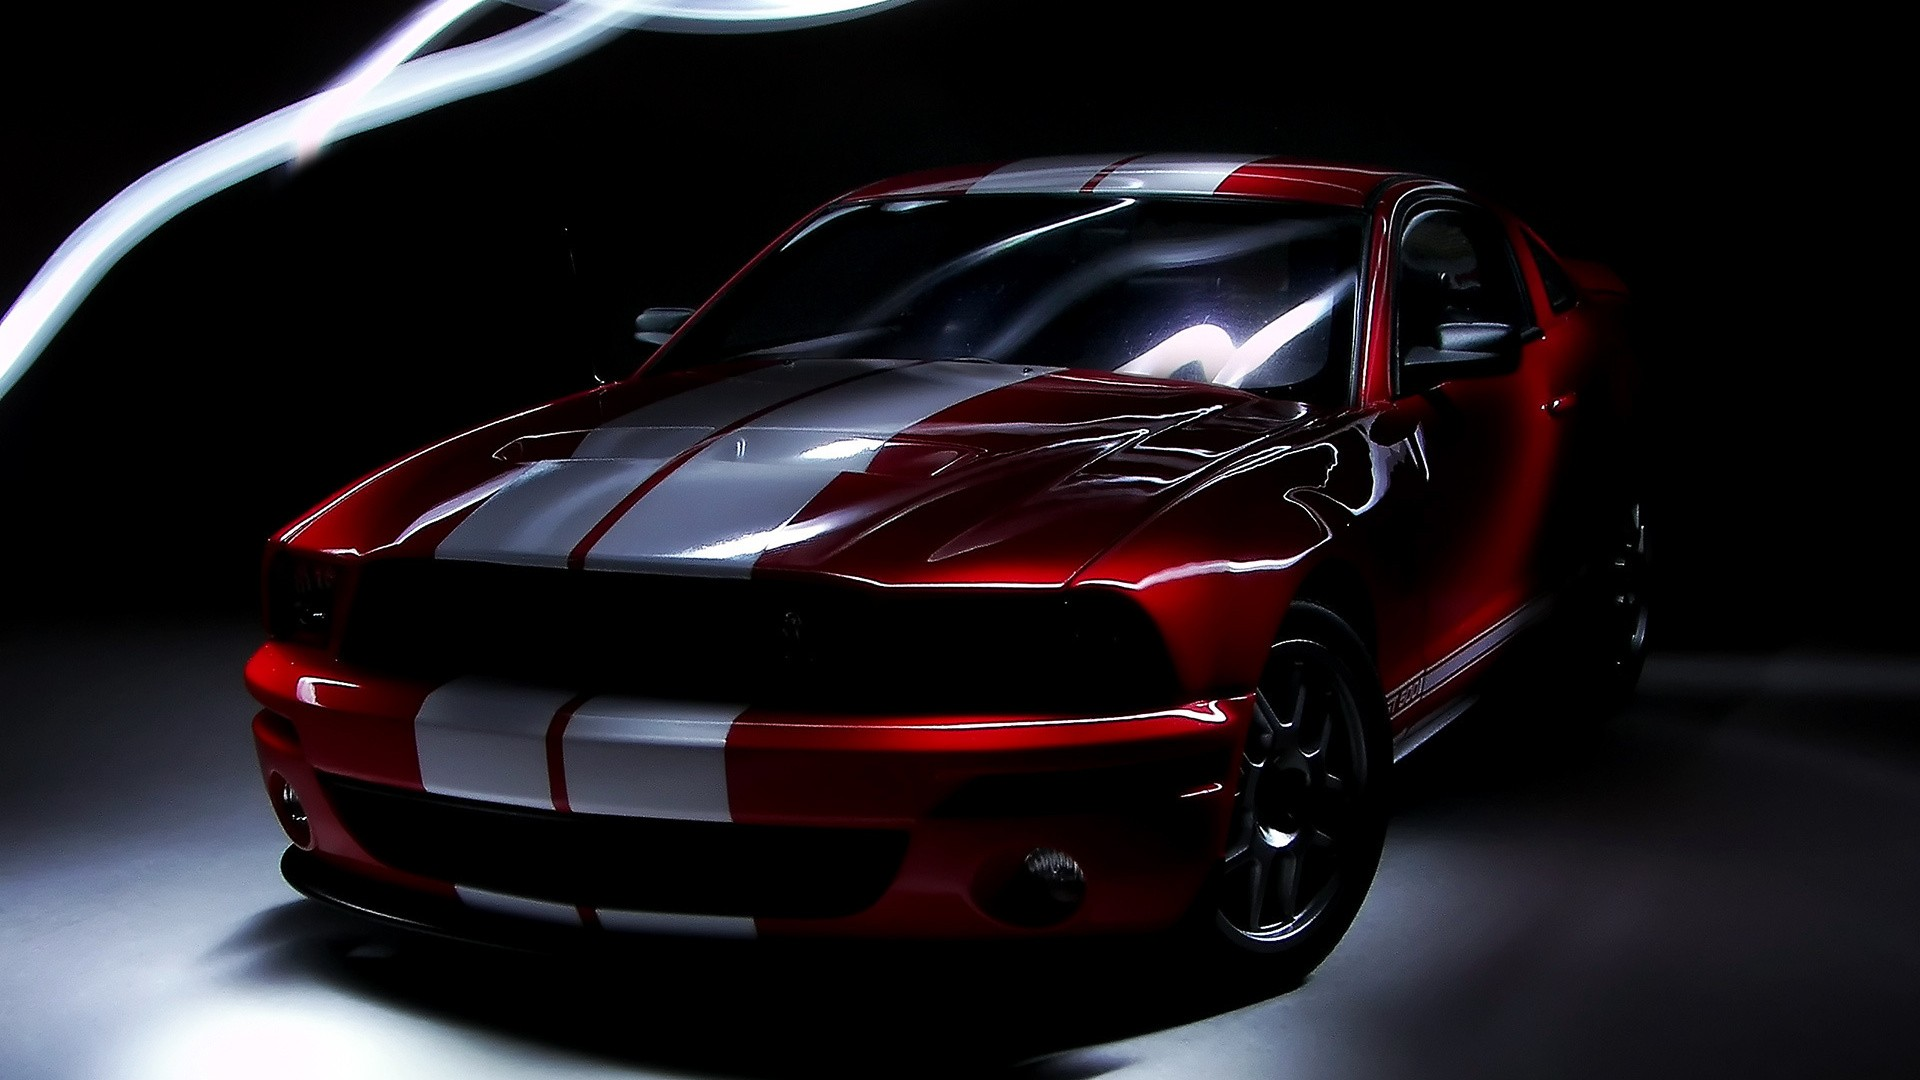 ford mustang shelby gt500 desktop 1920x1080 hd wallpaper 1218246 1920x1080